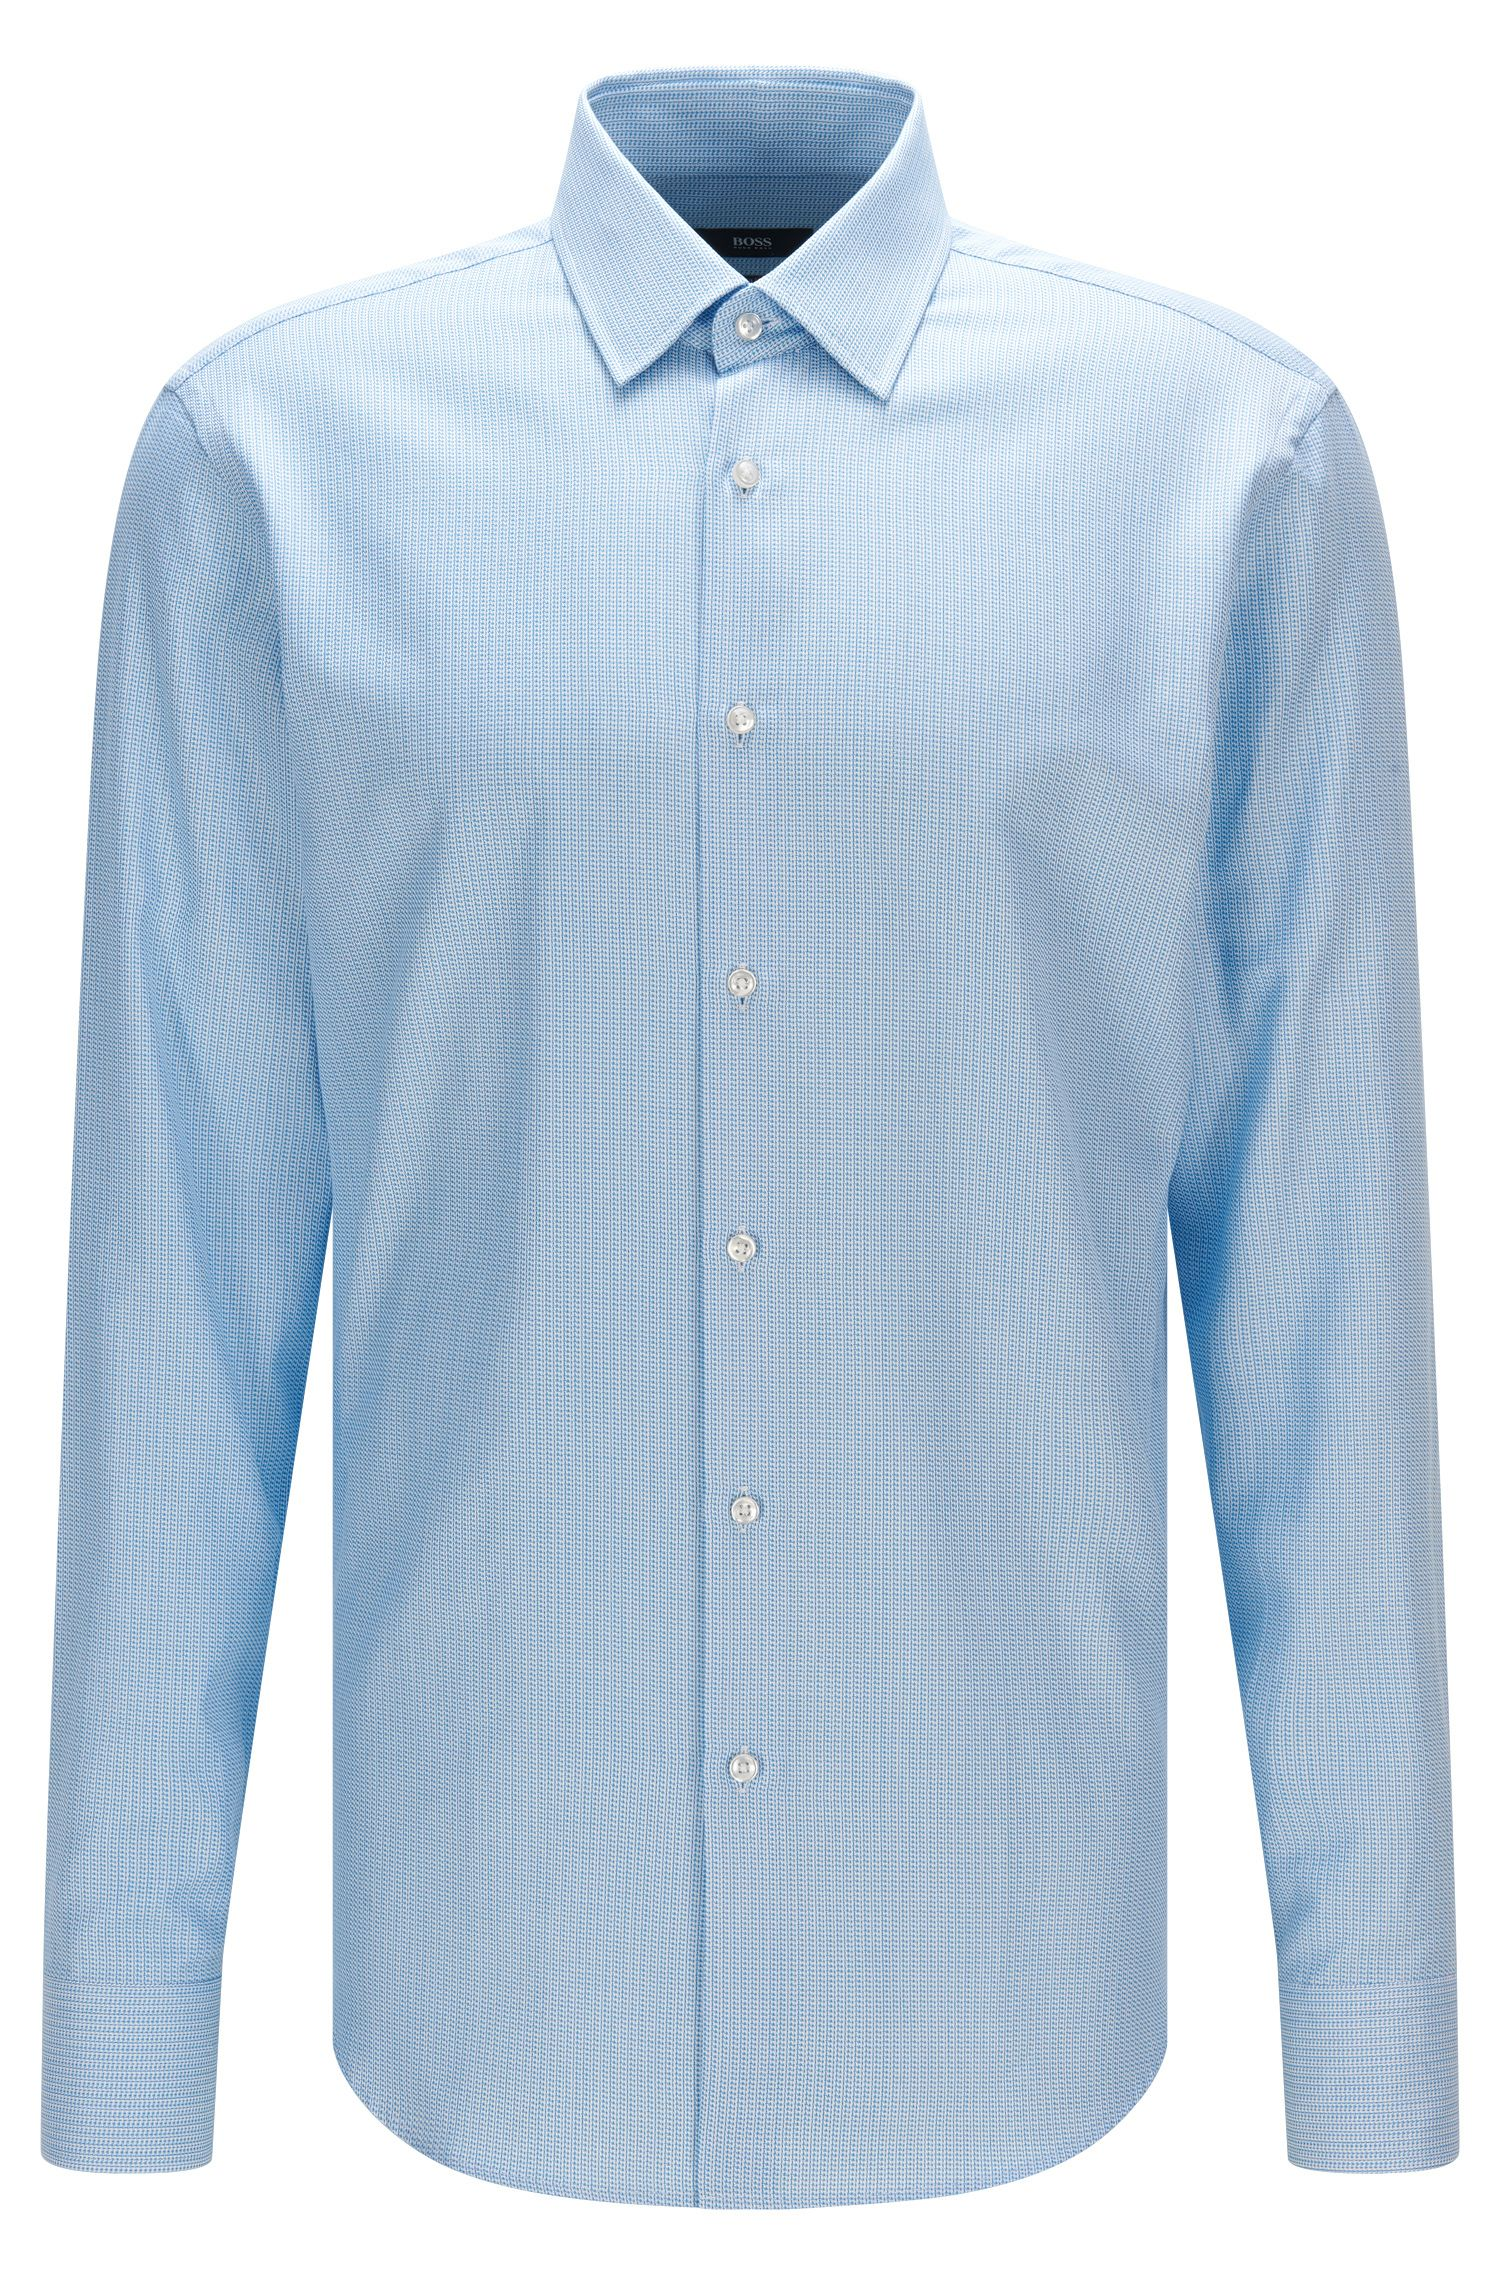 Regular-fit shirt in micro-structure cotton